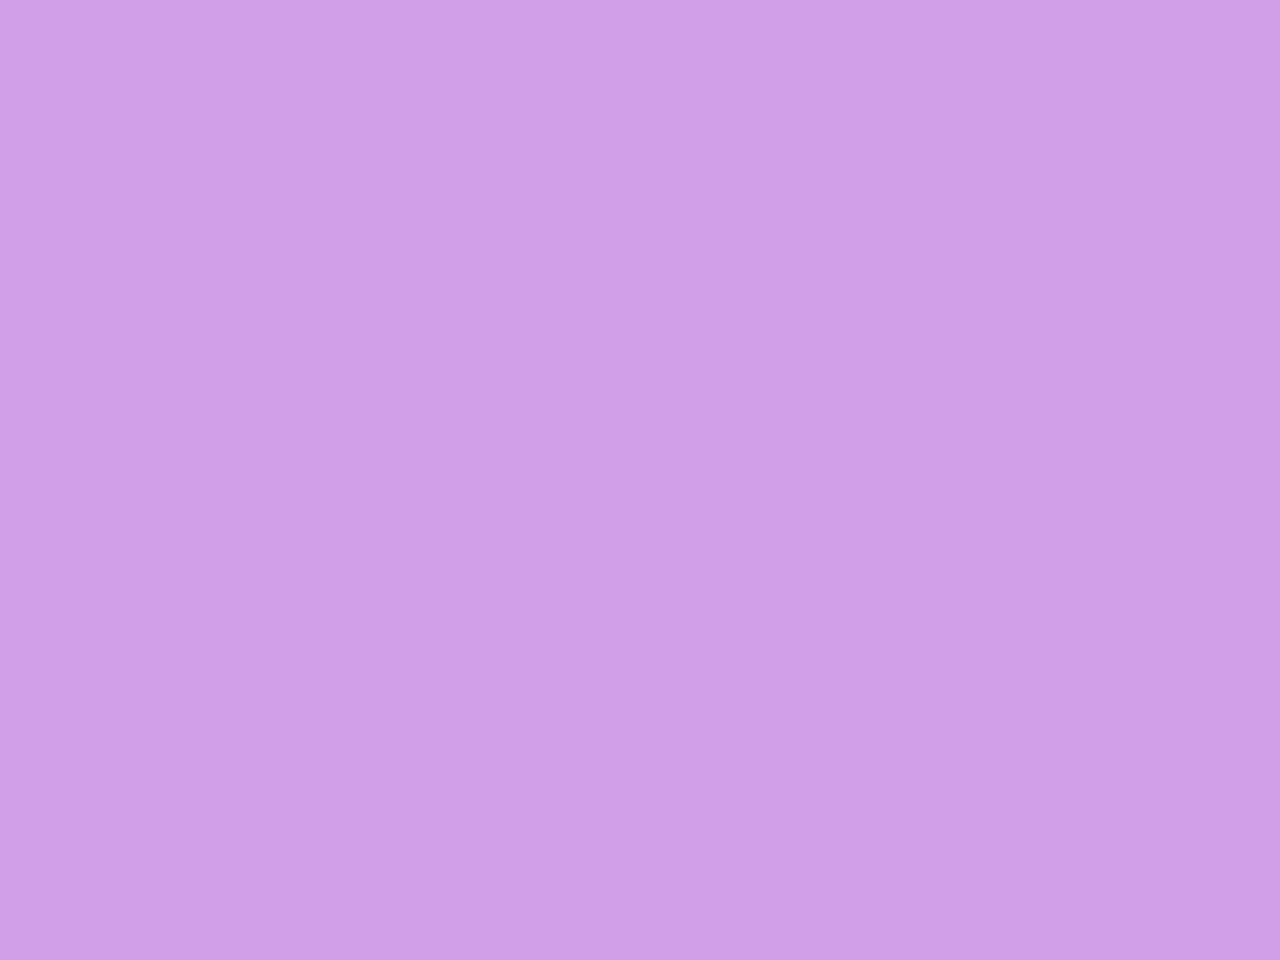 1280x960 Bright Ube Solid Color Background